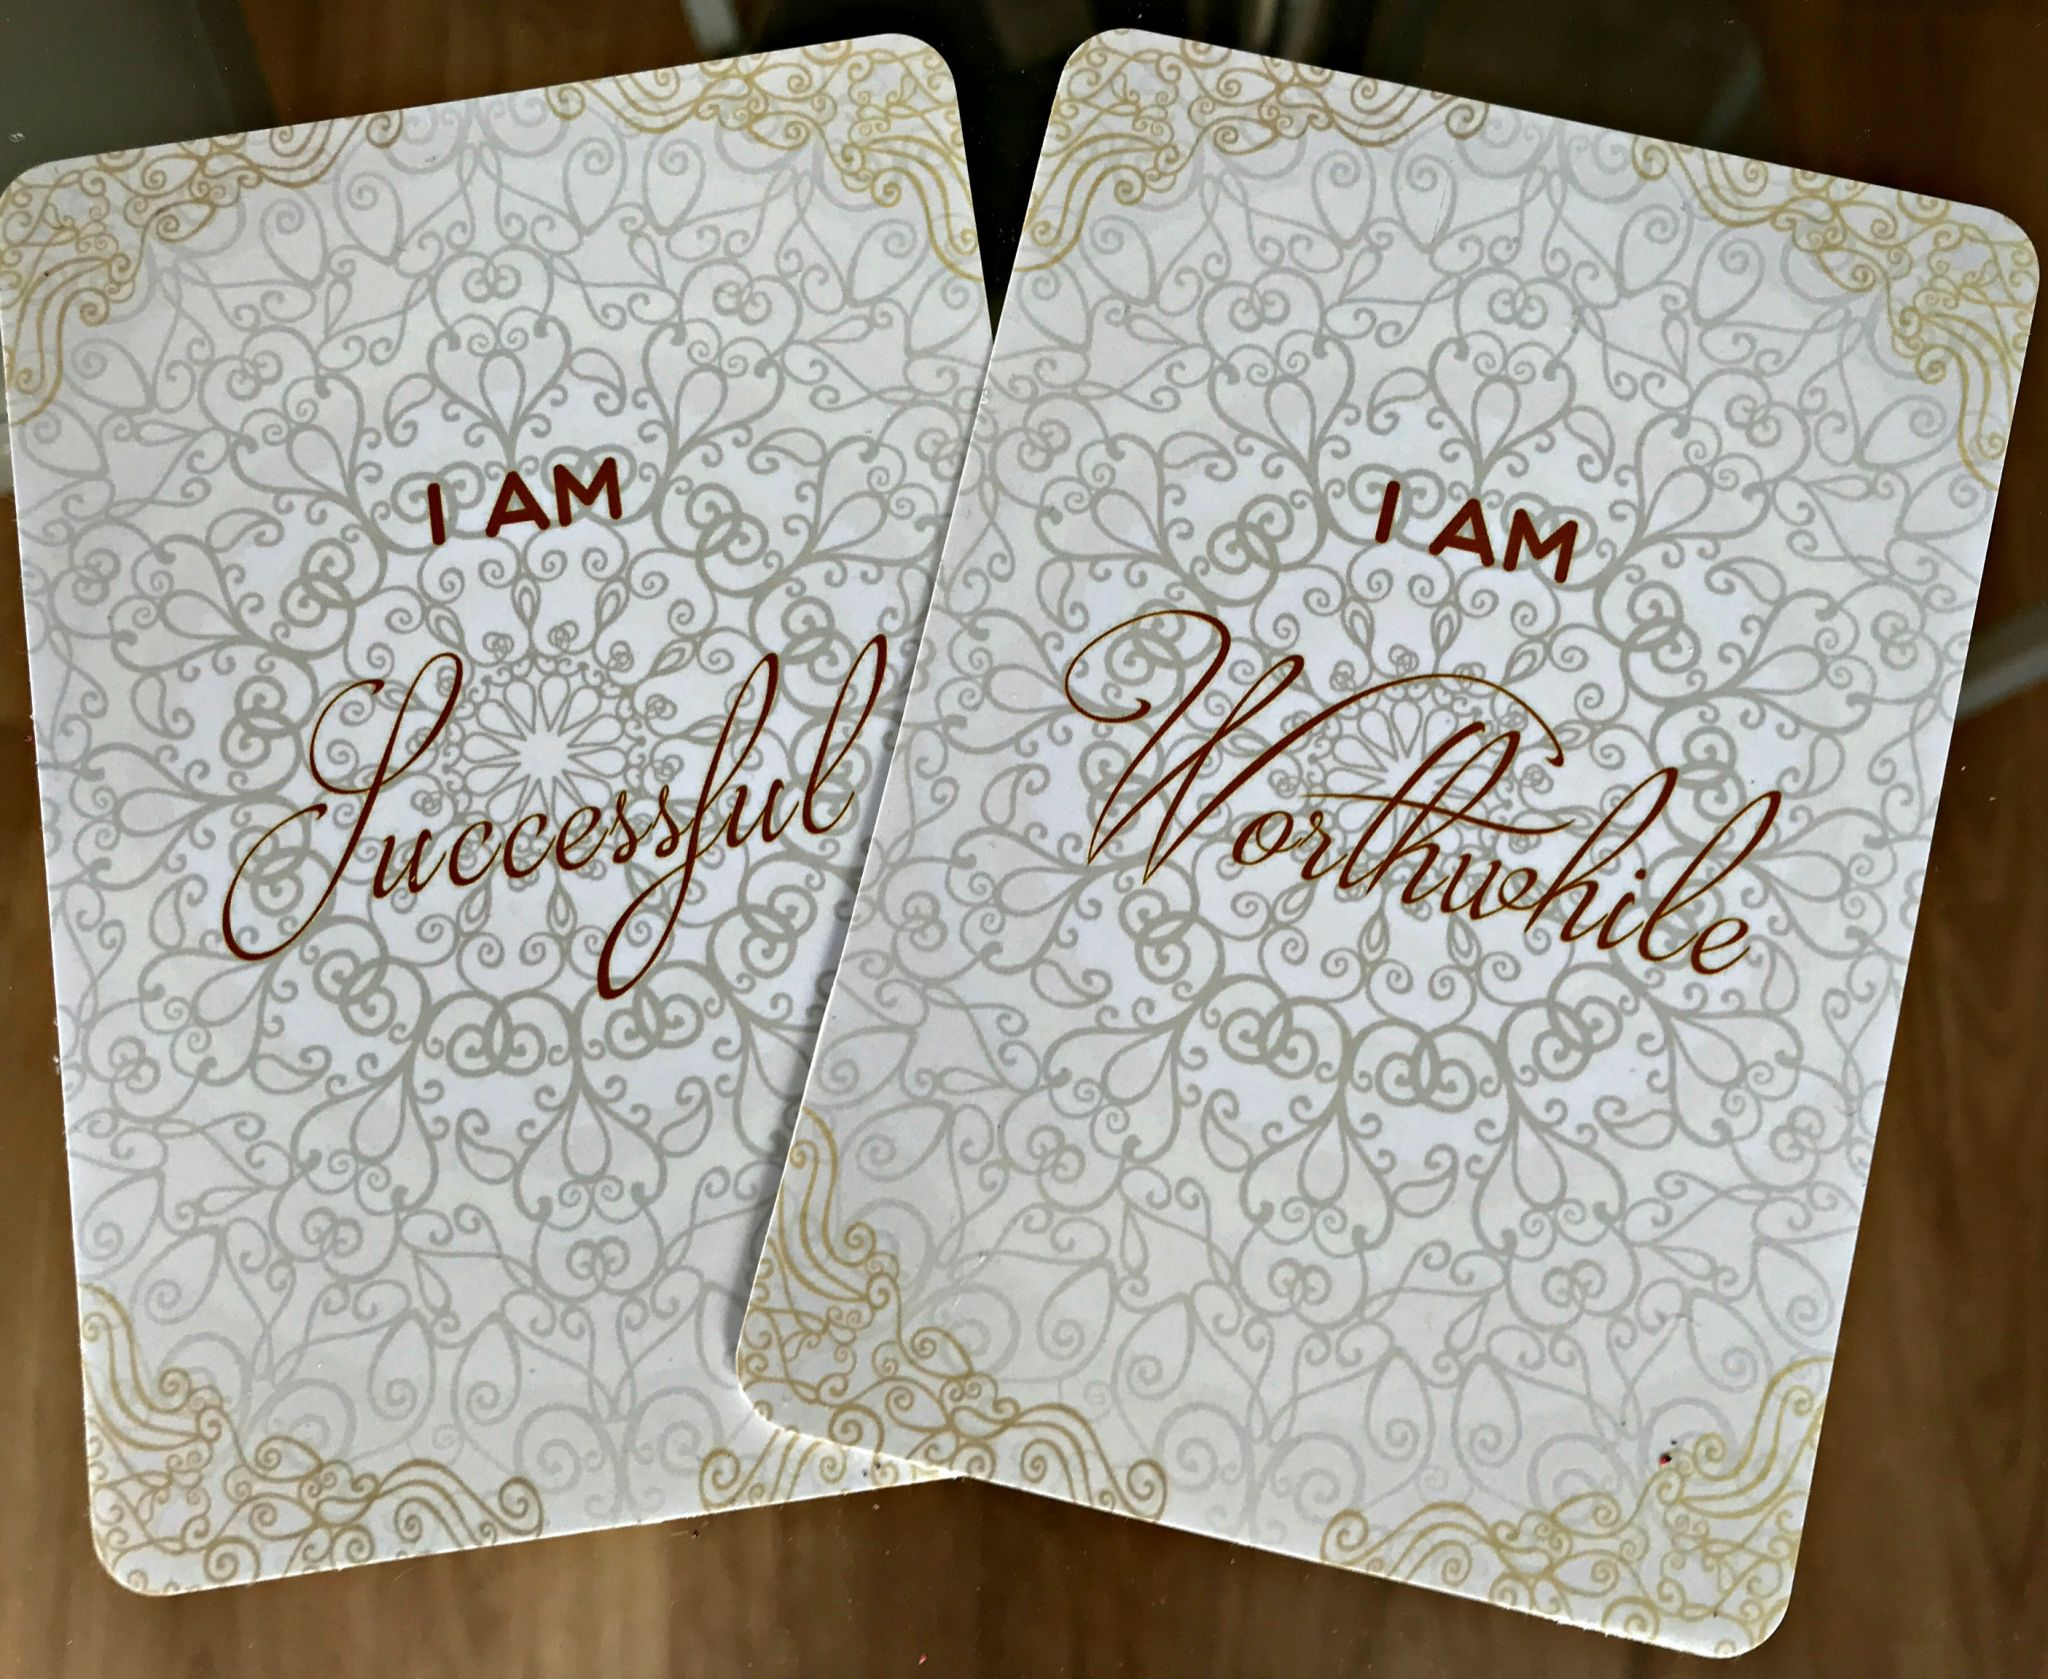 affirmation cards - 2 example cards